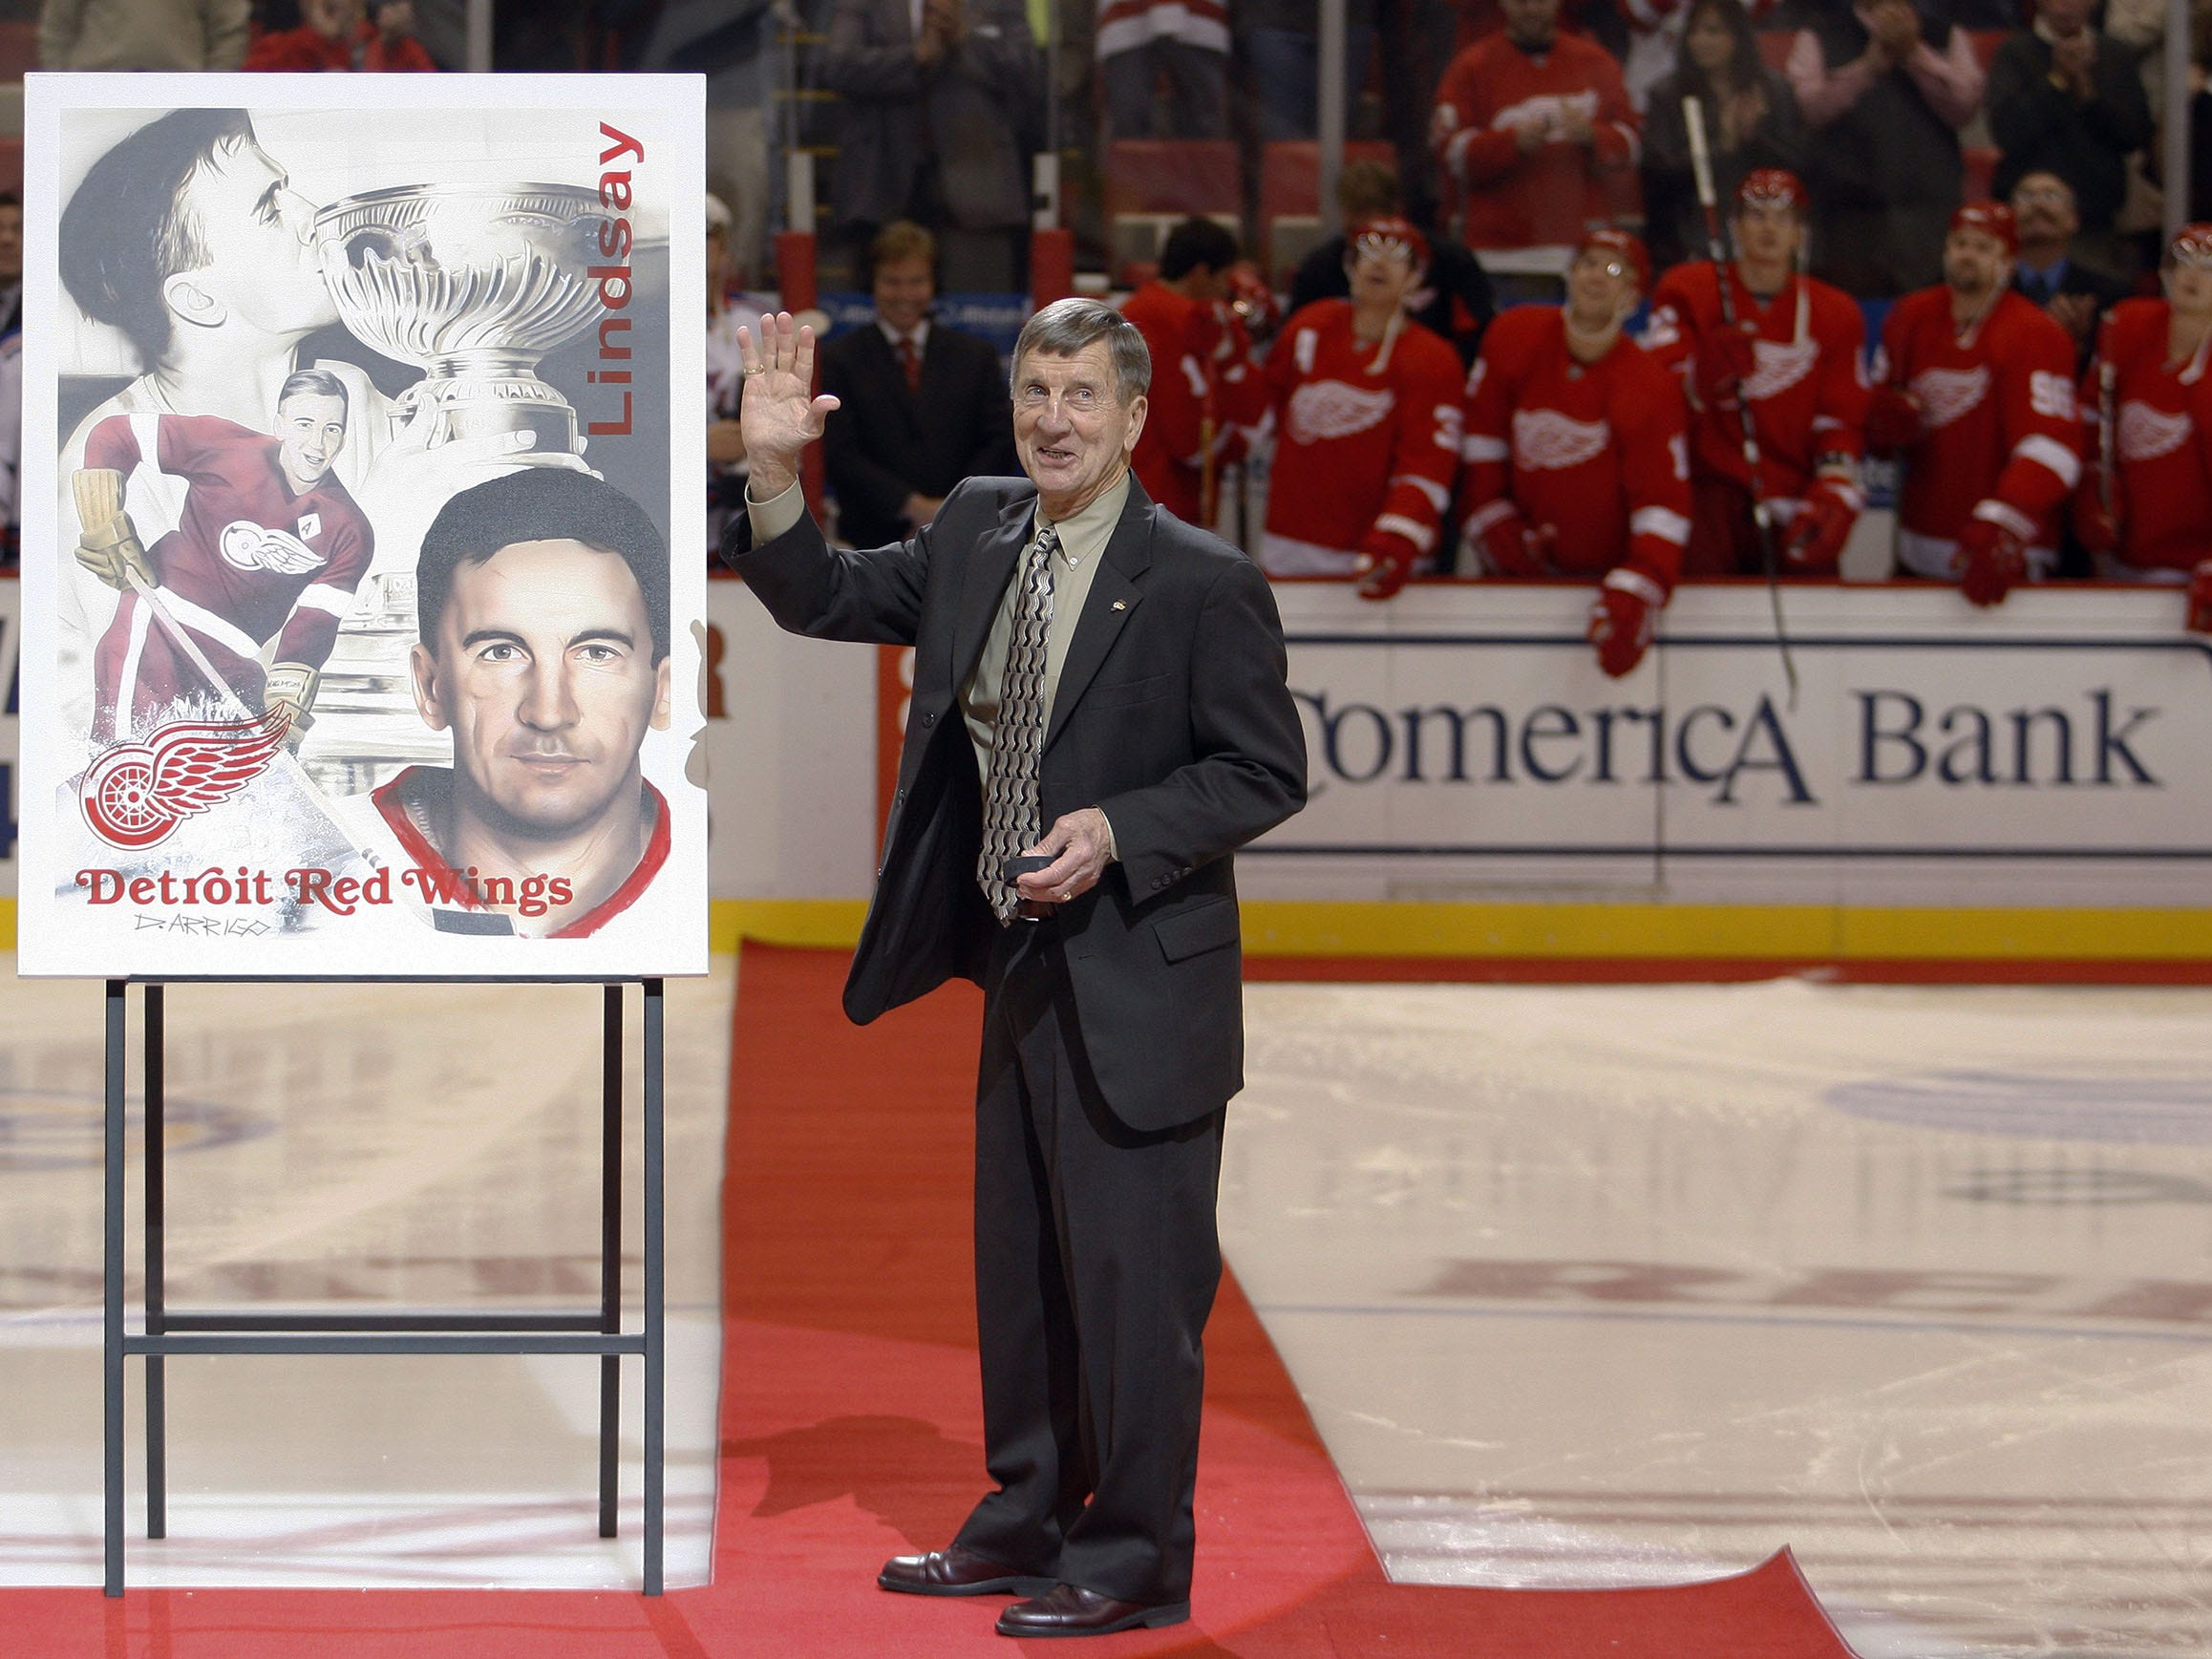 Red Wings legend Ted Lindsay waves to the crowd prior to start of game between the Red Wings and the New York Rangers on October 18, 2008 at the Joe Louis Arena in Detroit.